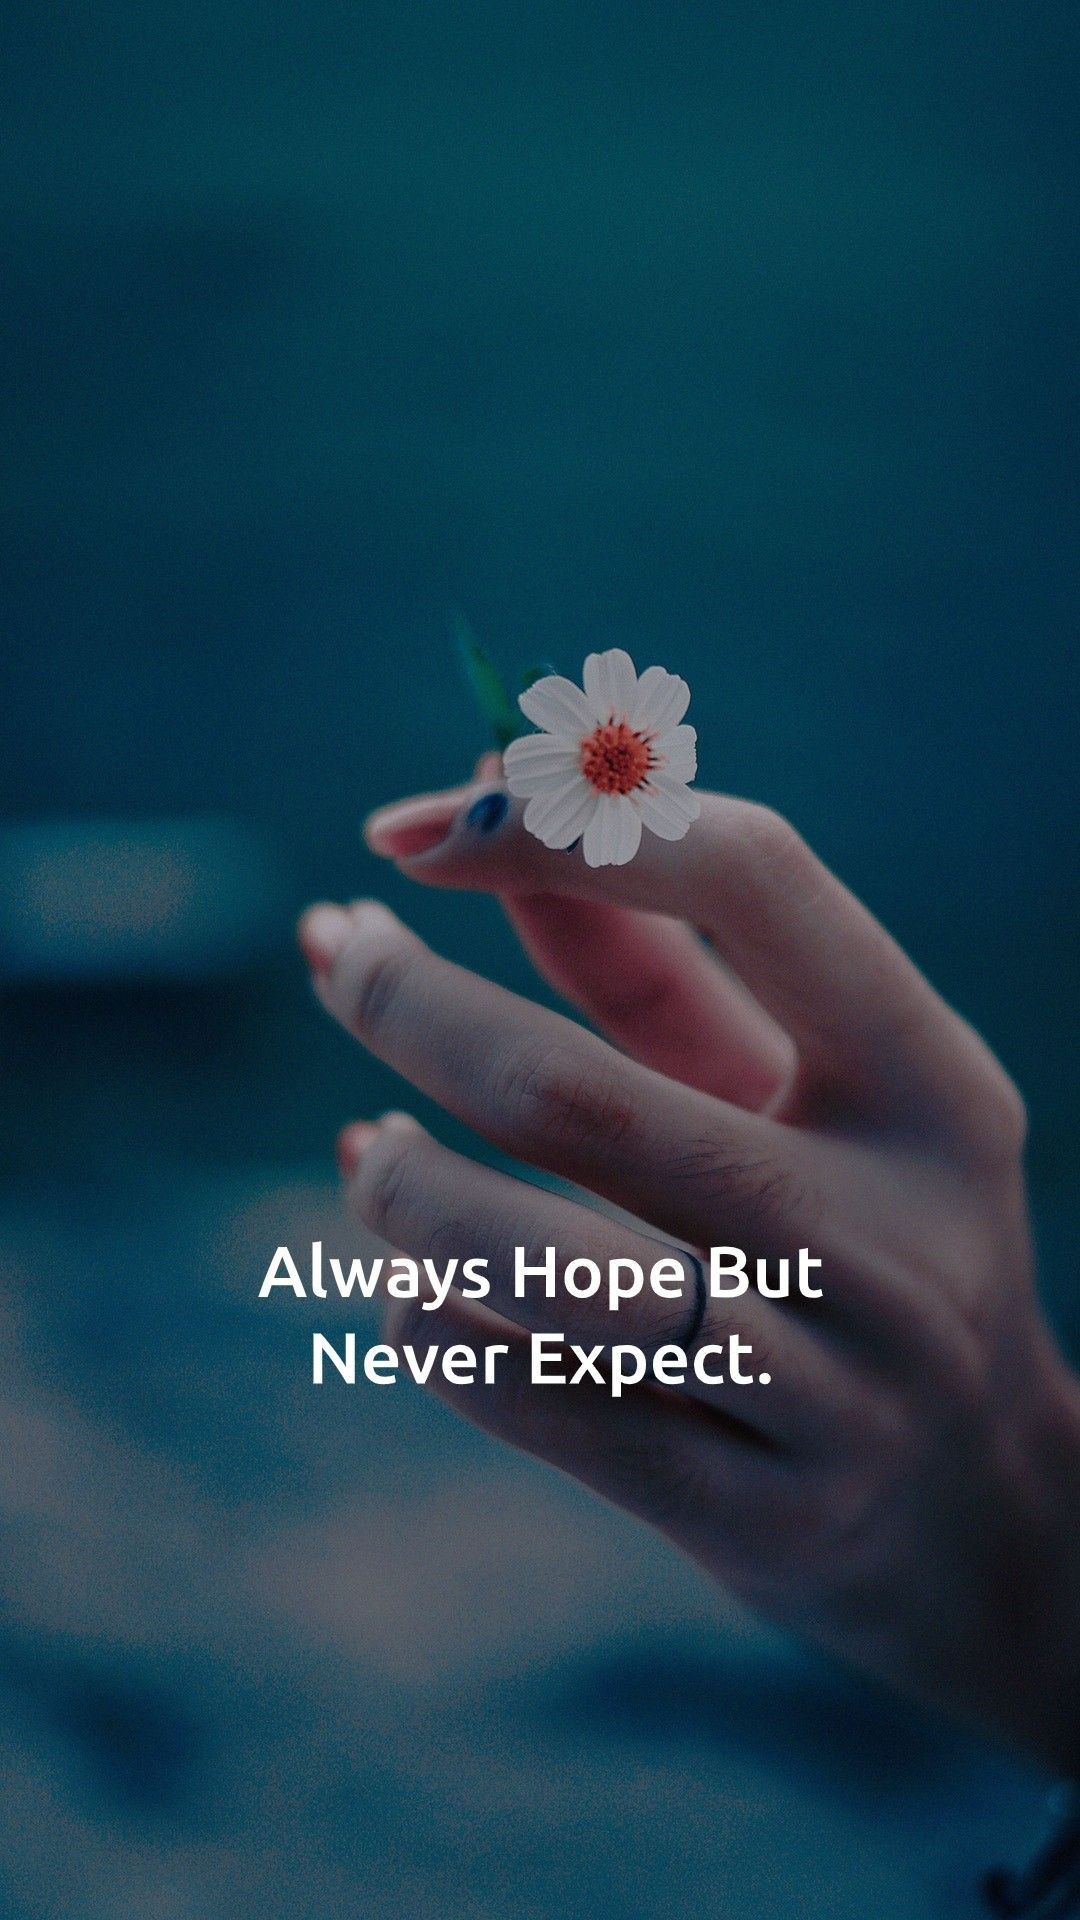 Motivational Quotes Never Expect Quotes Expectation Quotes Best Quotes App